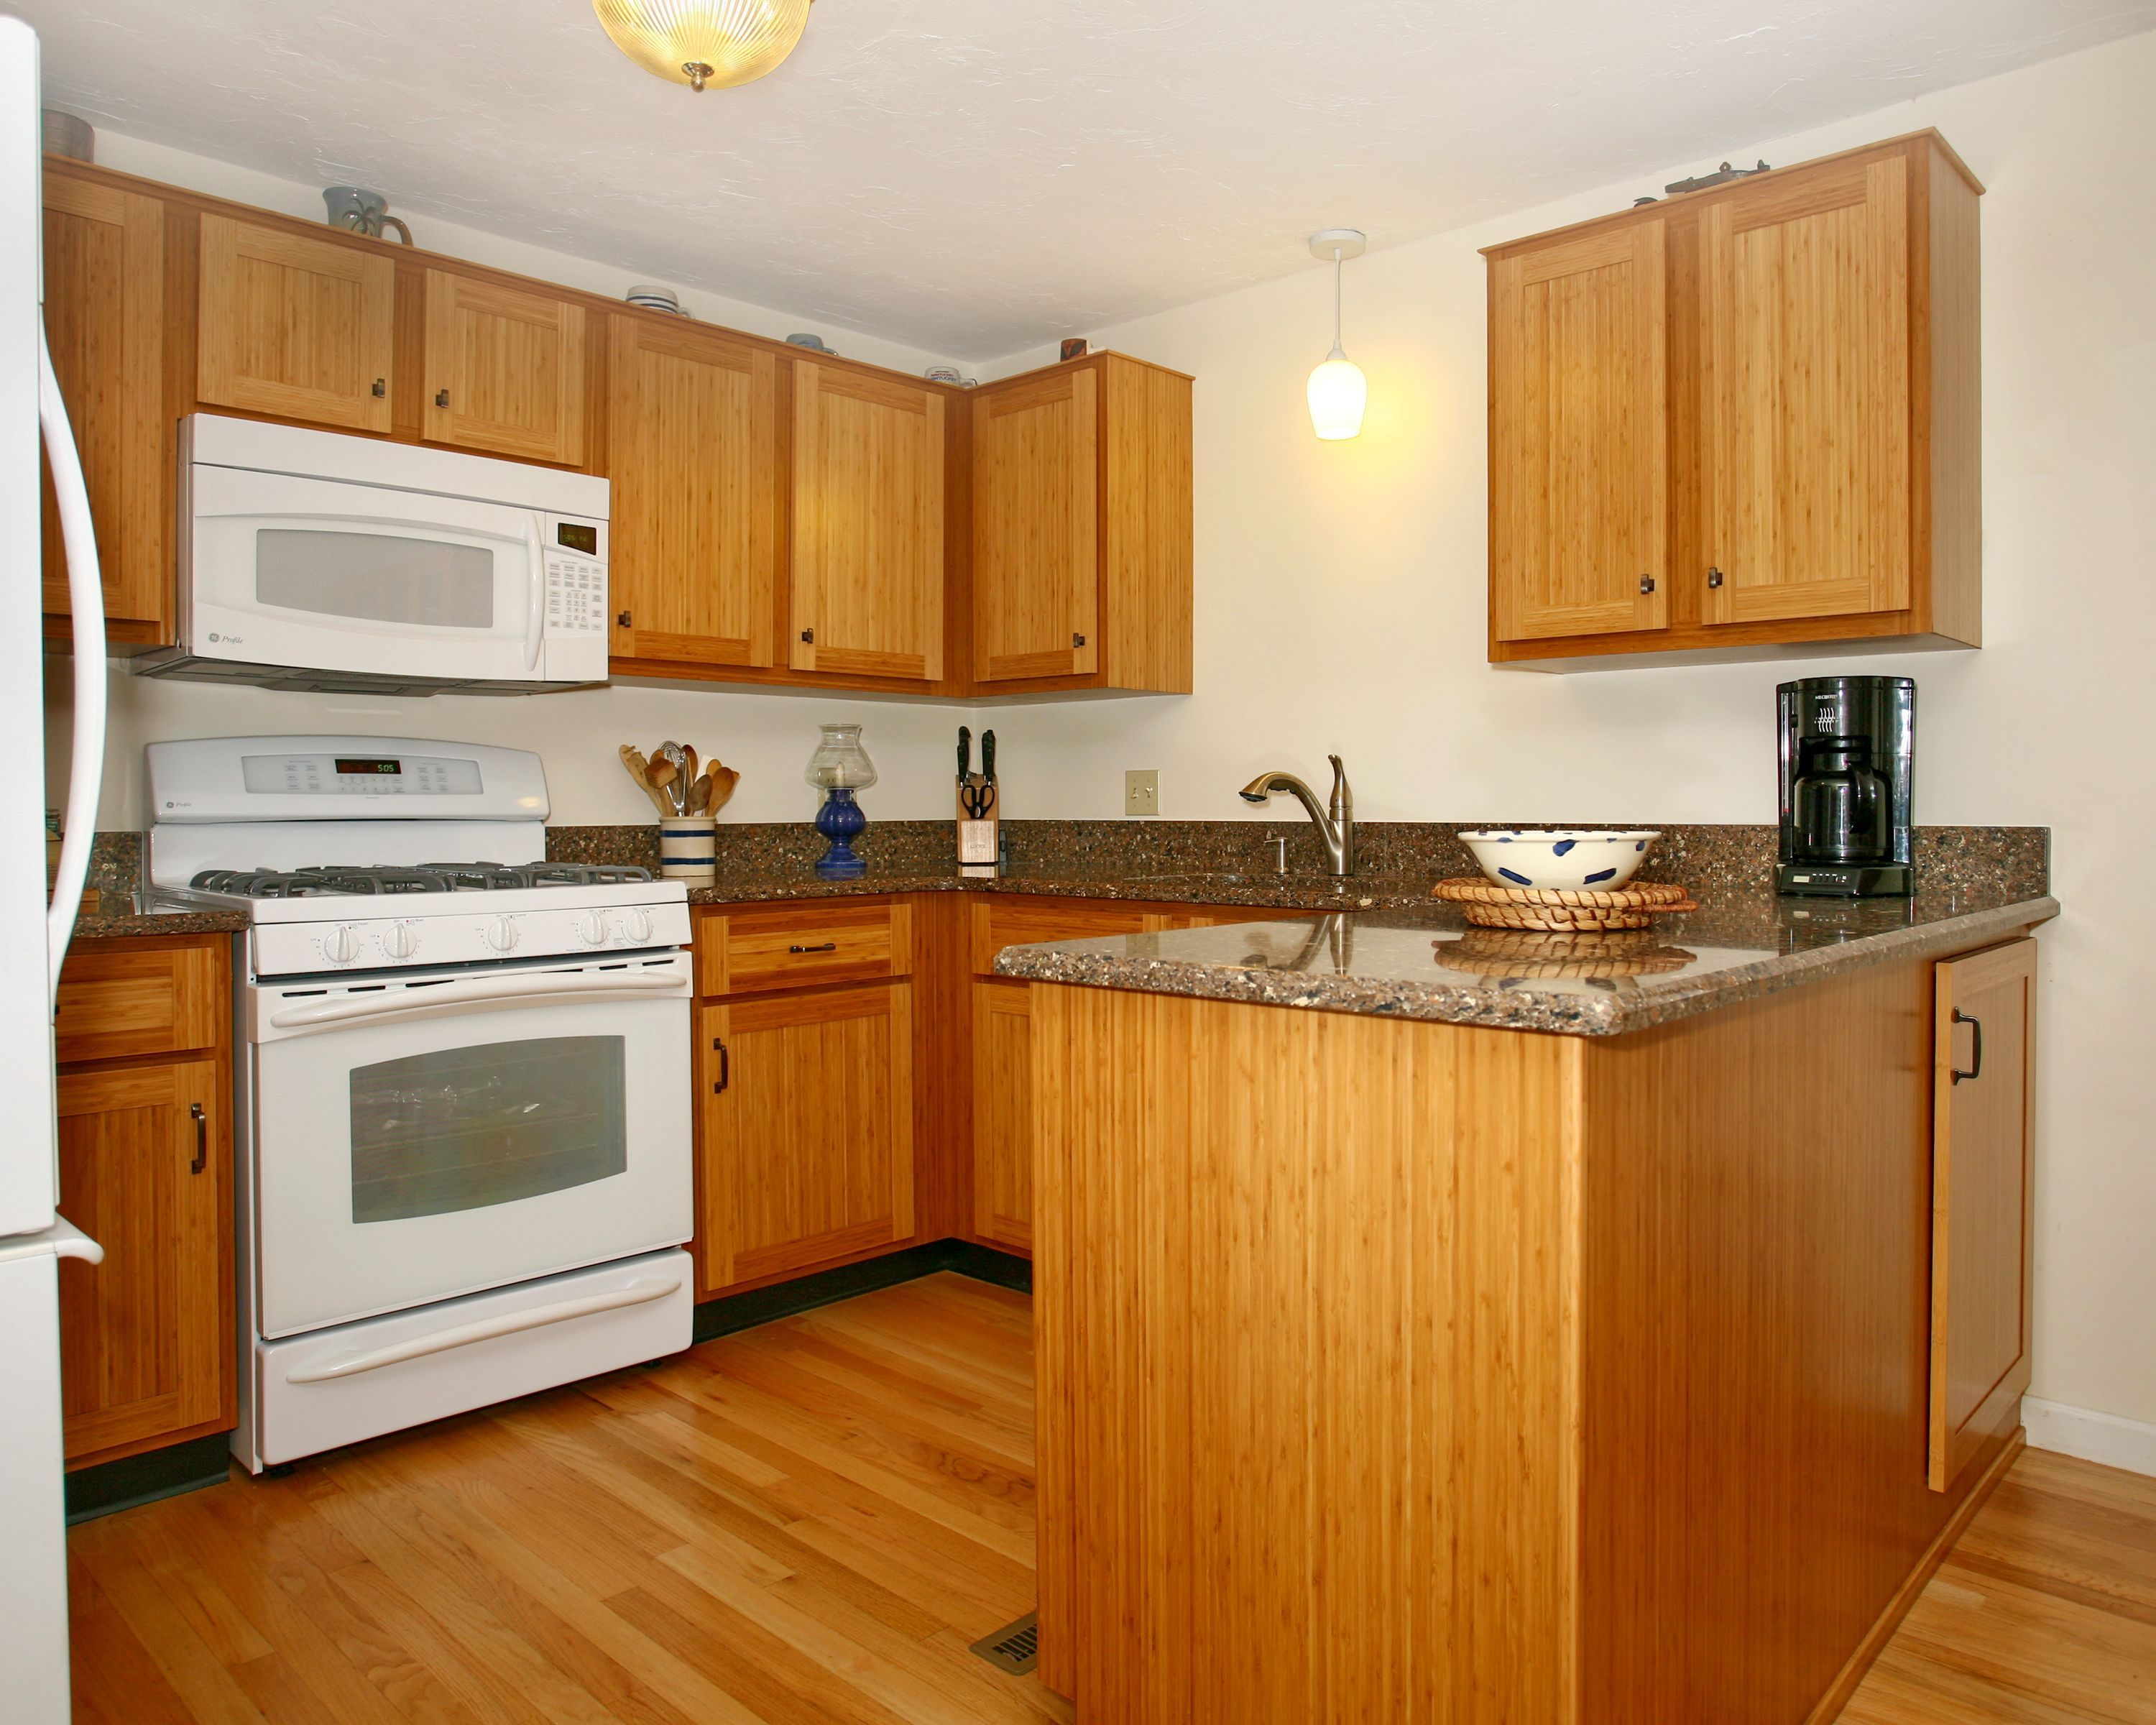 Bamboo Kitchen Cupboards Fashion Concepts Cost Of Kitchen Cabinets Free Standing Kitchen Cabinets Freestanding Cooker